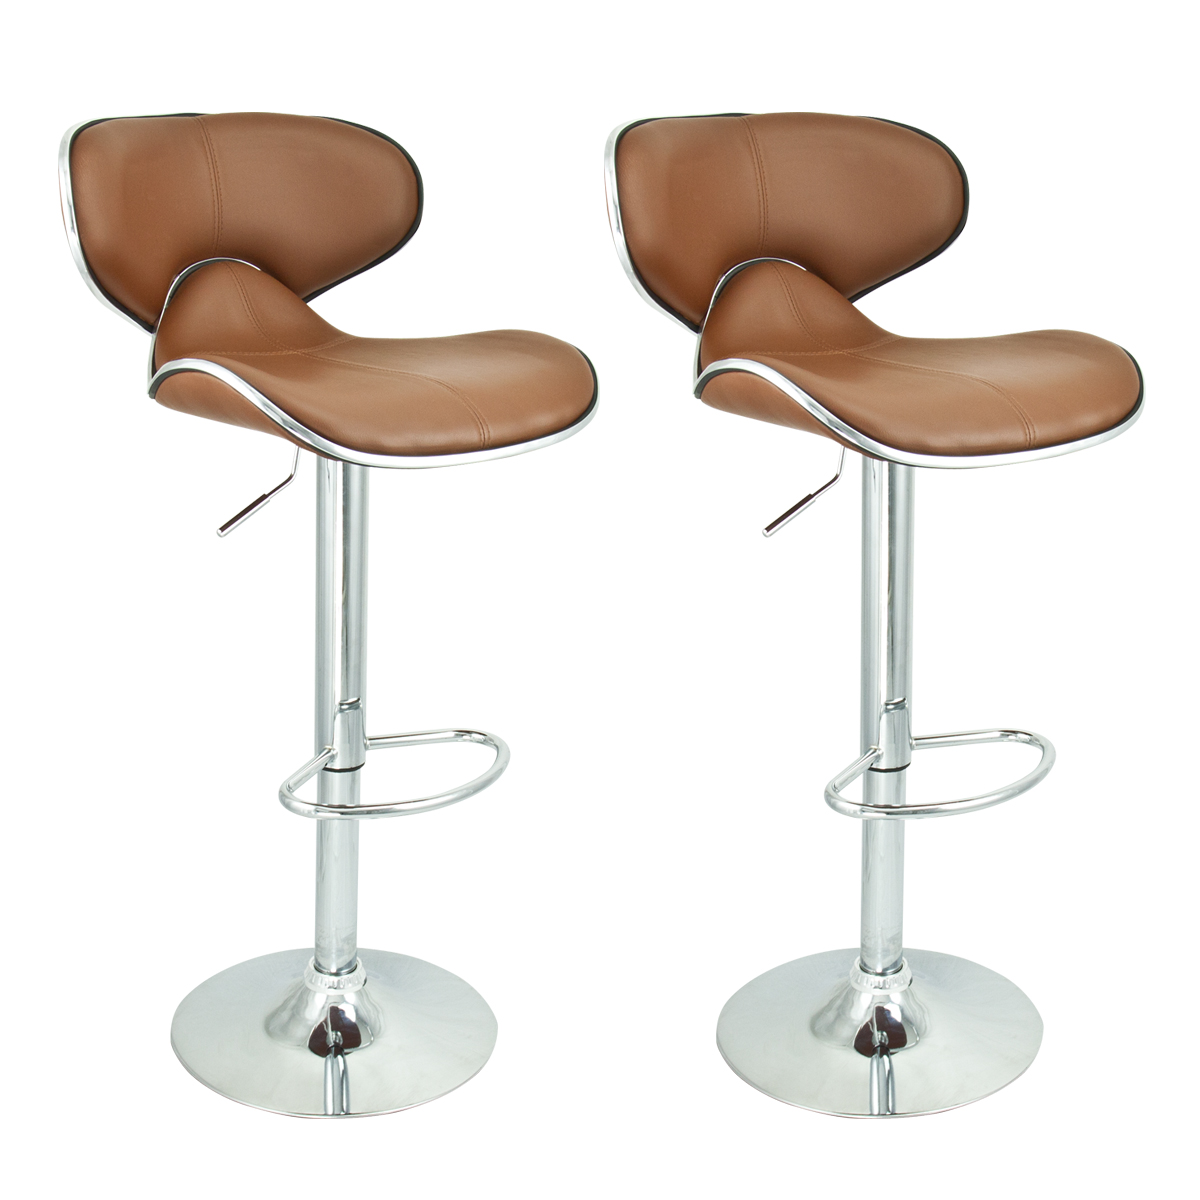 2 Modern Barstool Swivel Leather Adjustable Hydraulic